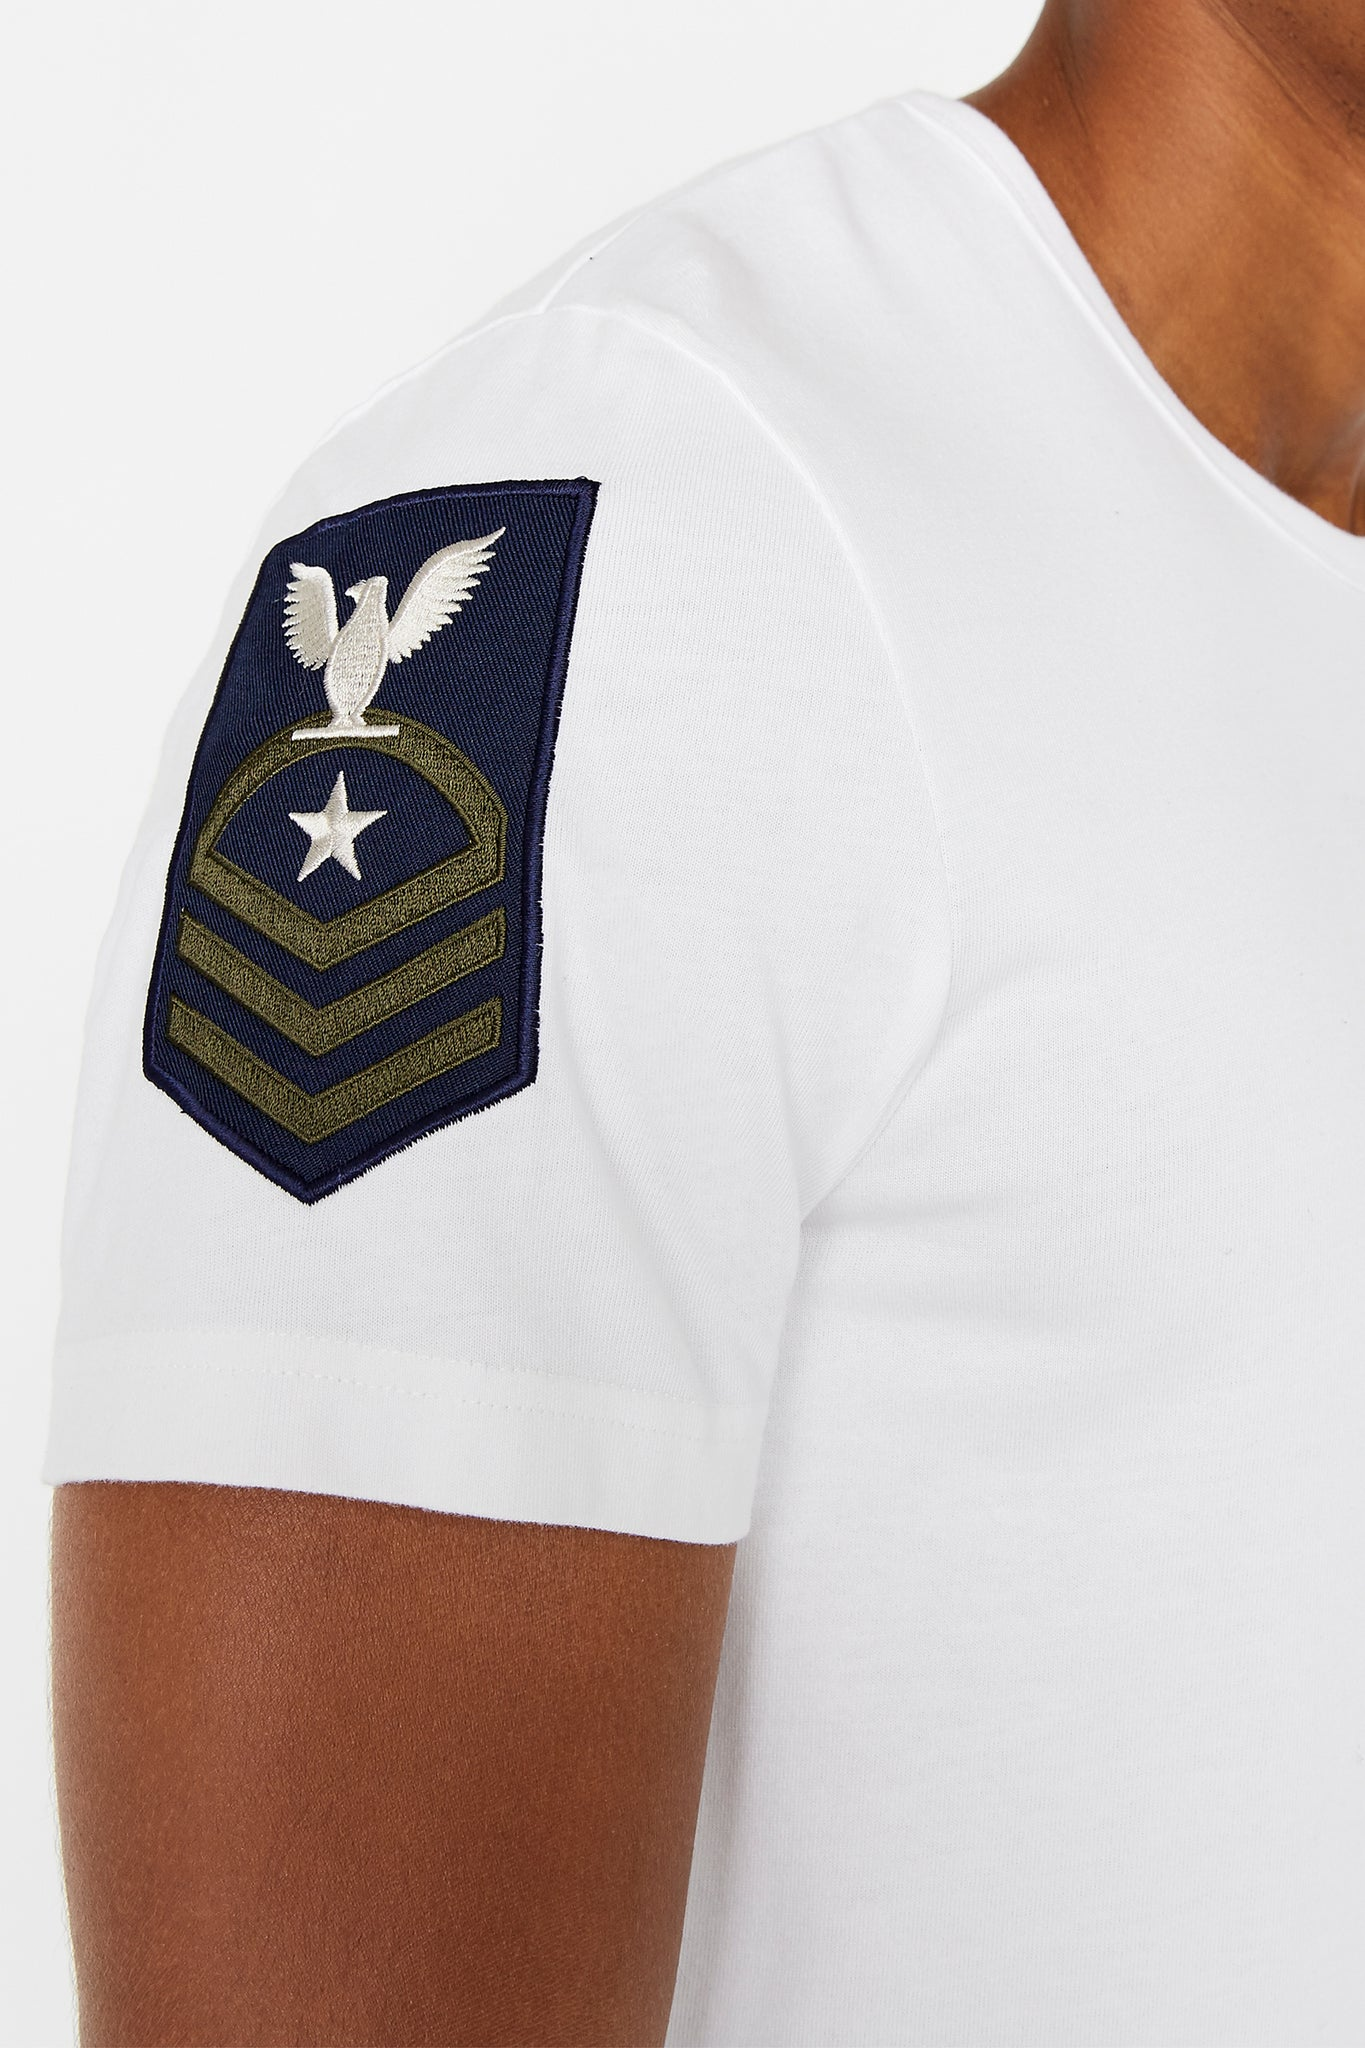 Detailed view of patch on right sleeve